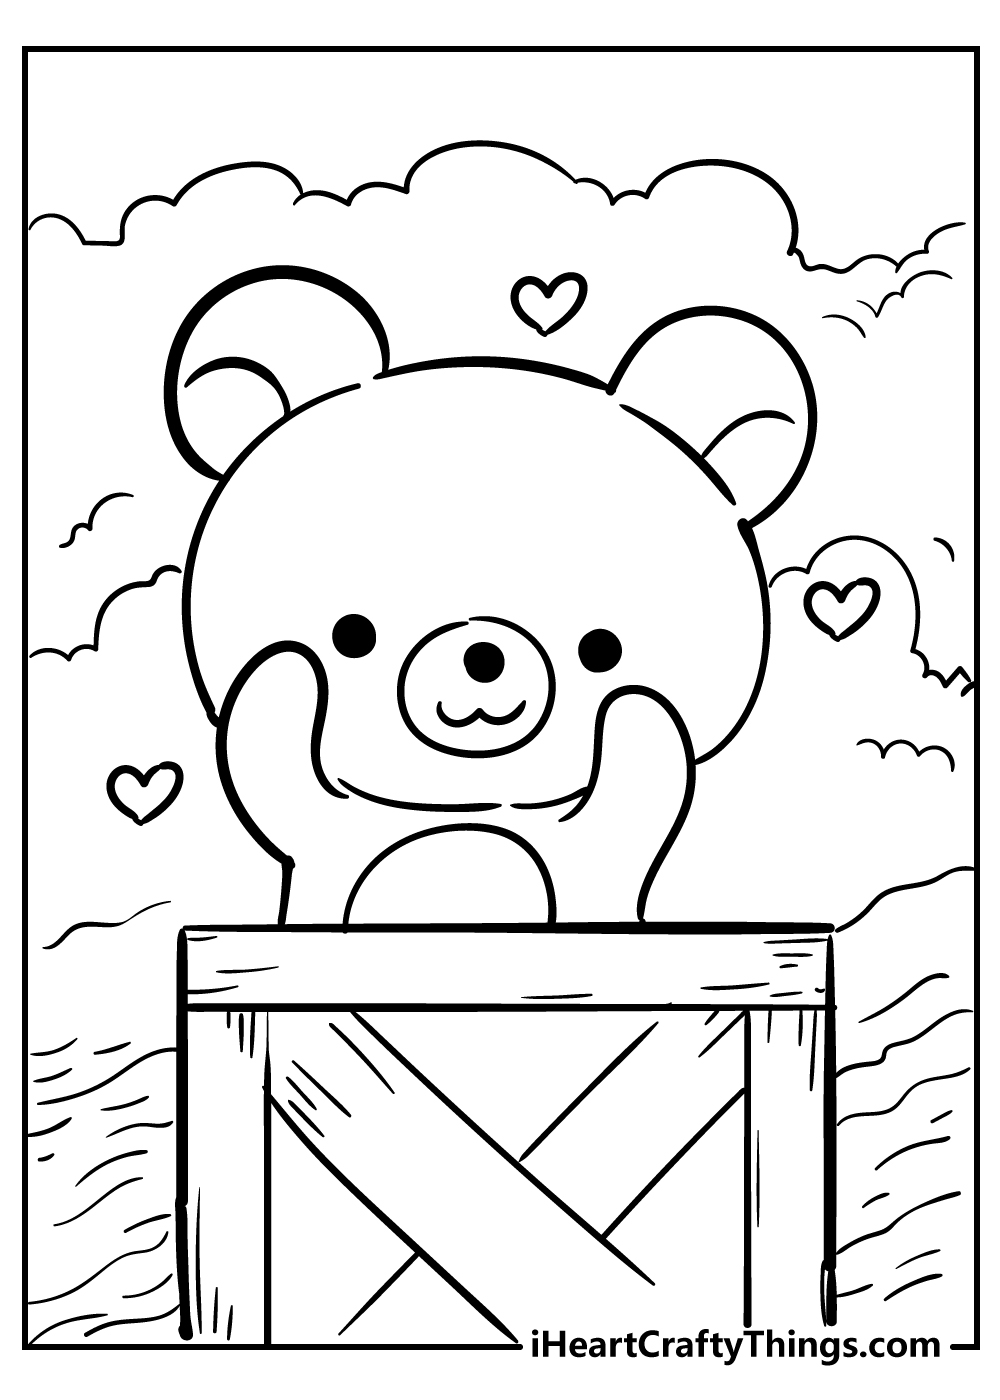 new kawaii coloring pages for kids download free